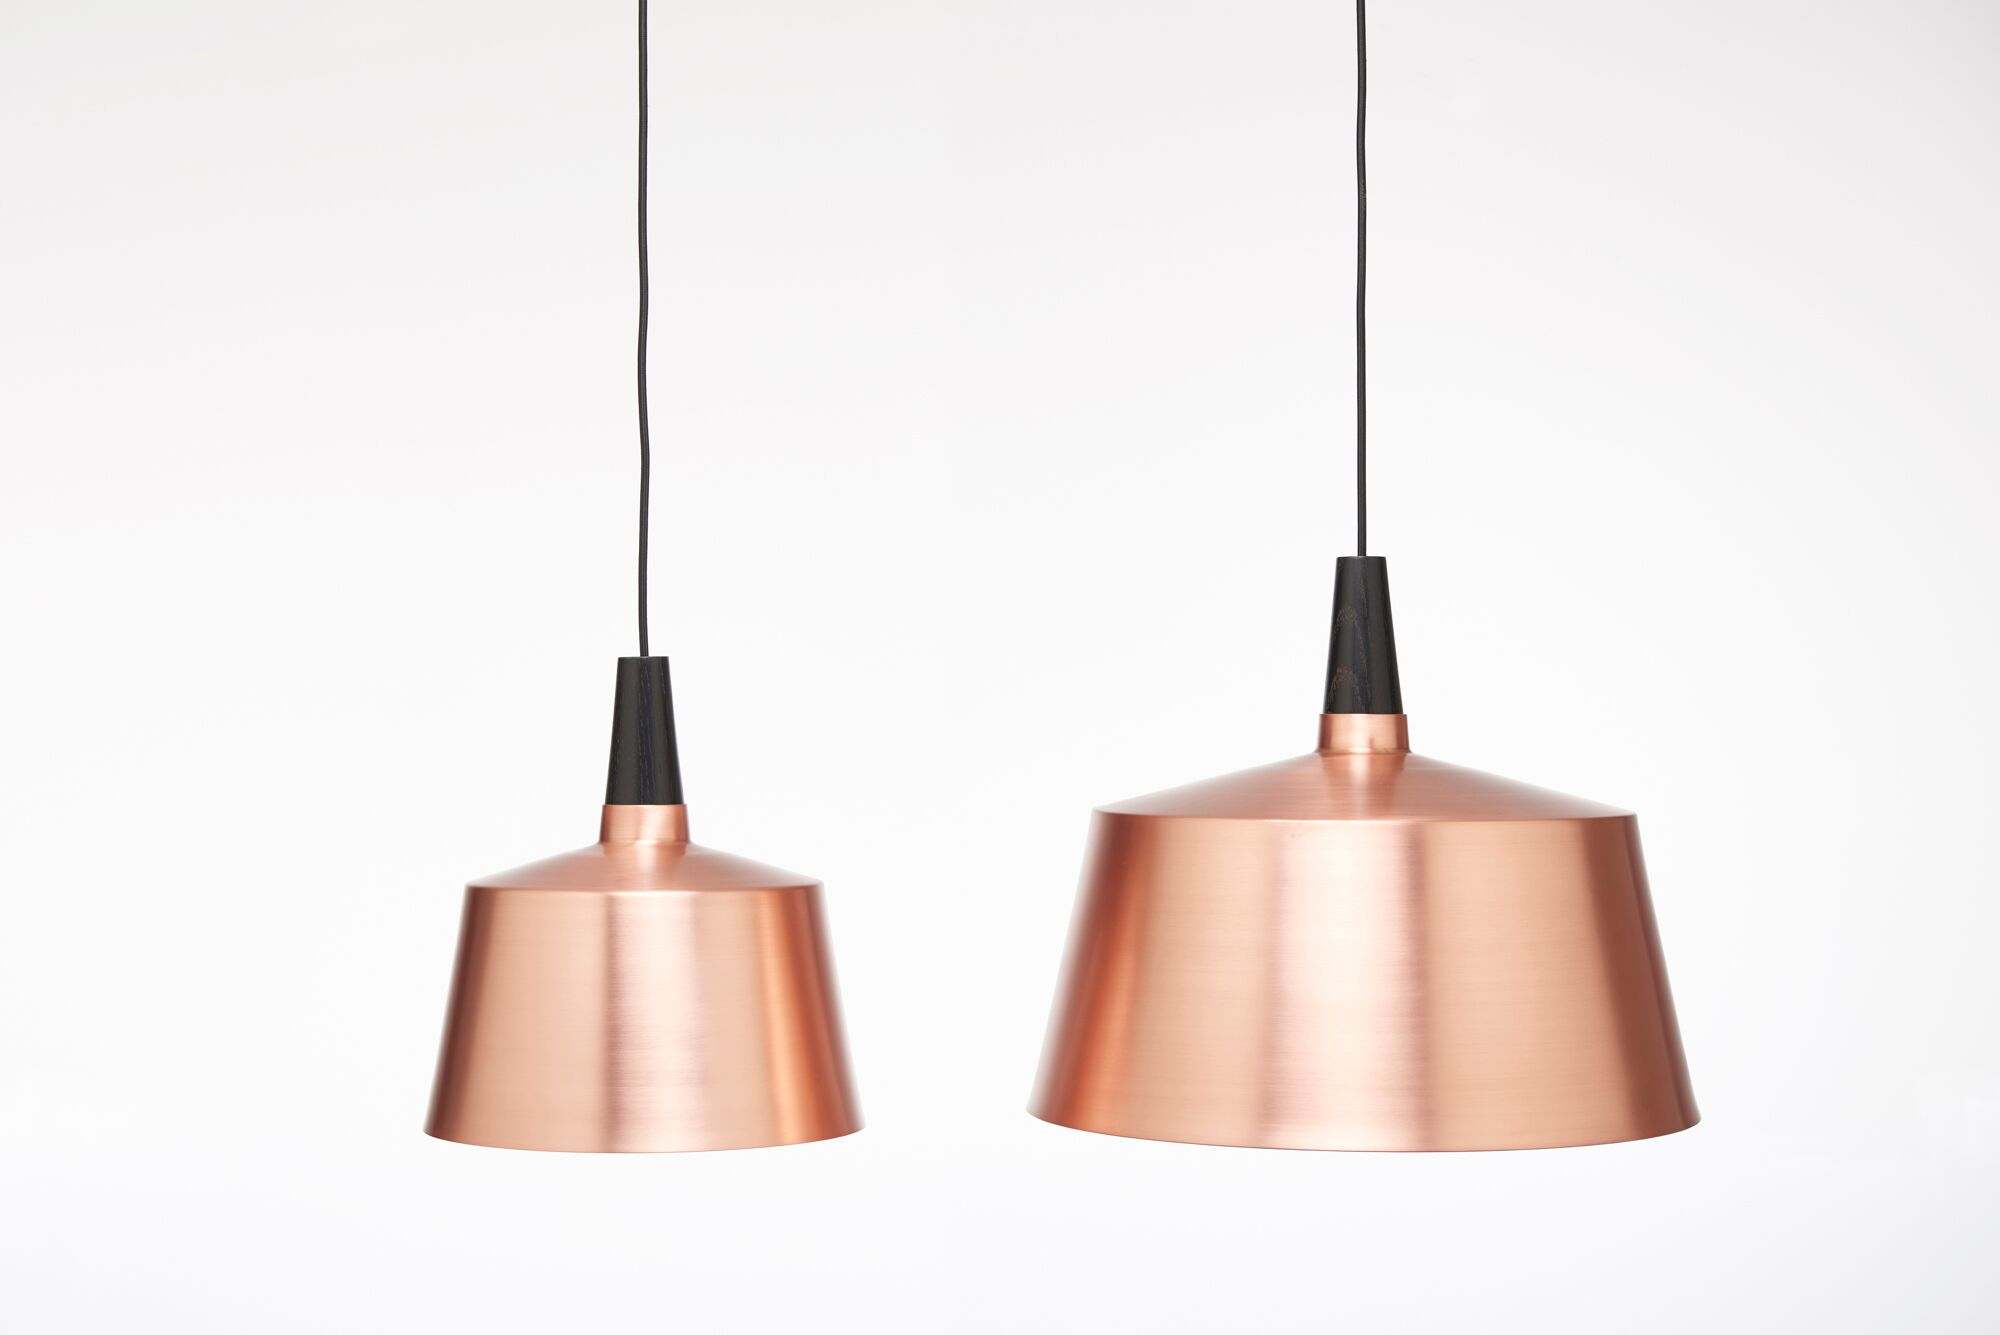 Elegant Lights for residential environments